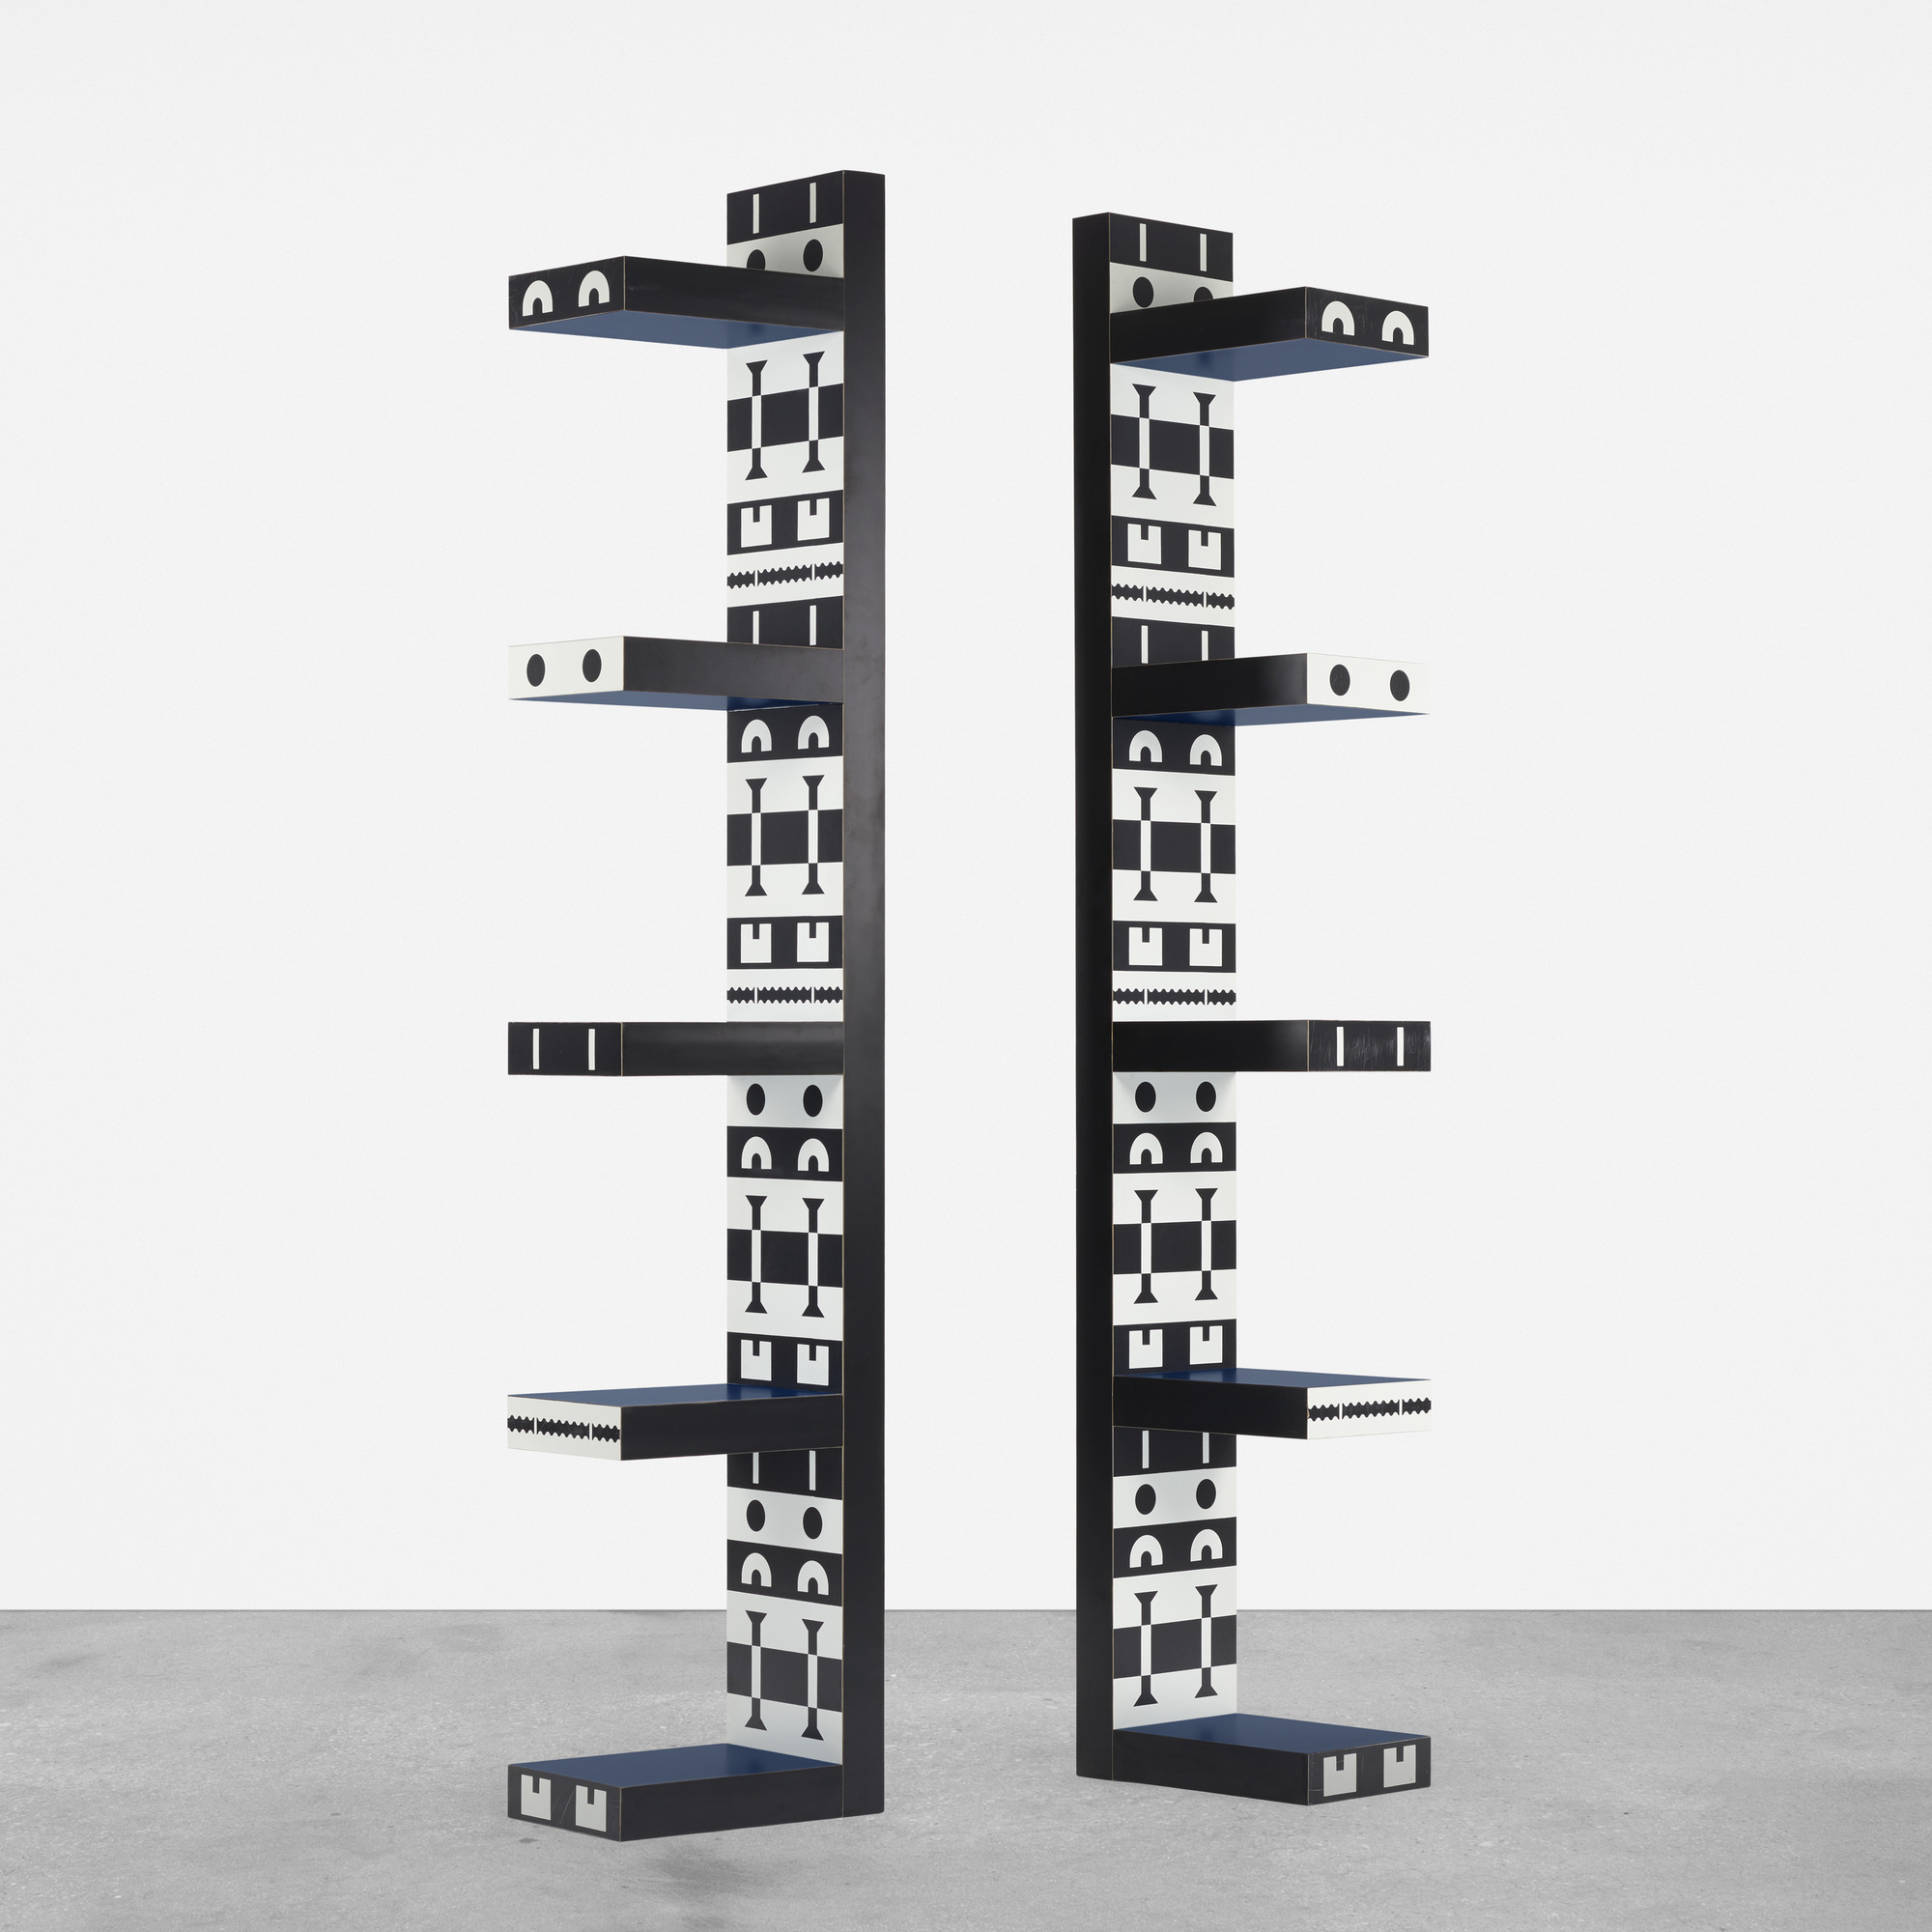 277: Studio Alchimia / pair of bookshelves from the Ollo collection (1 of 3)